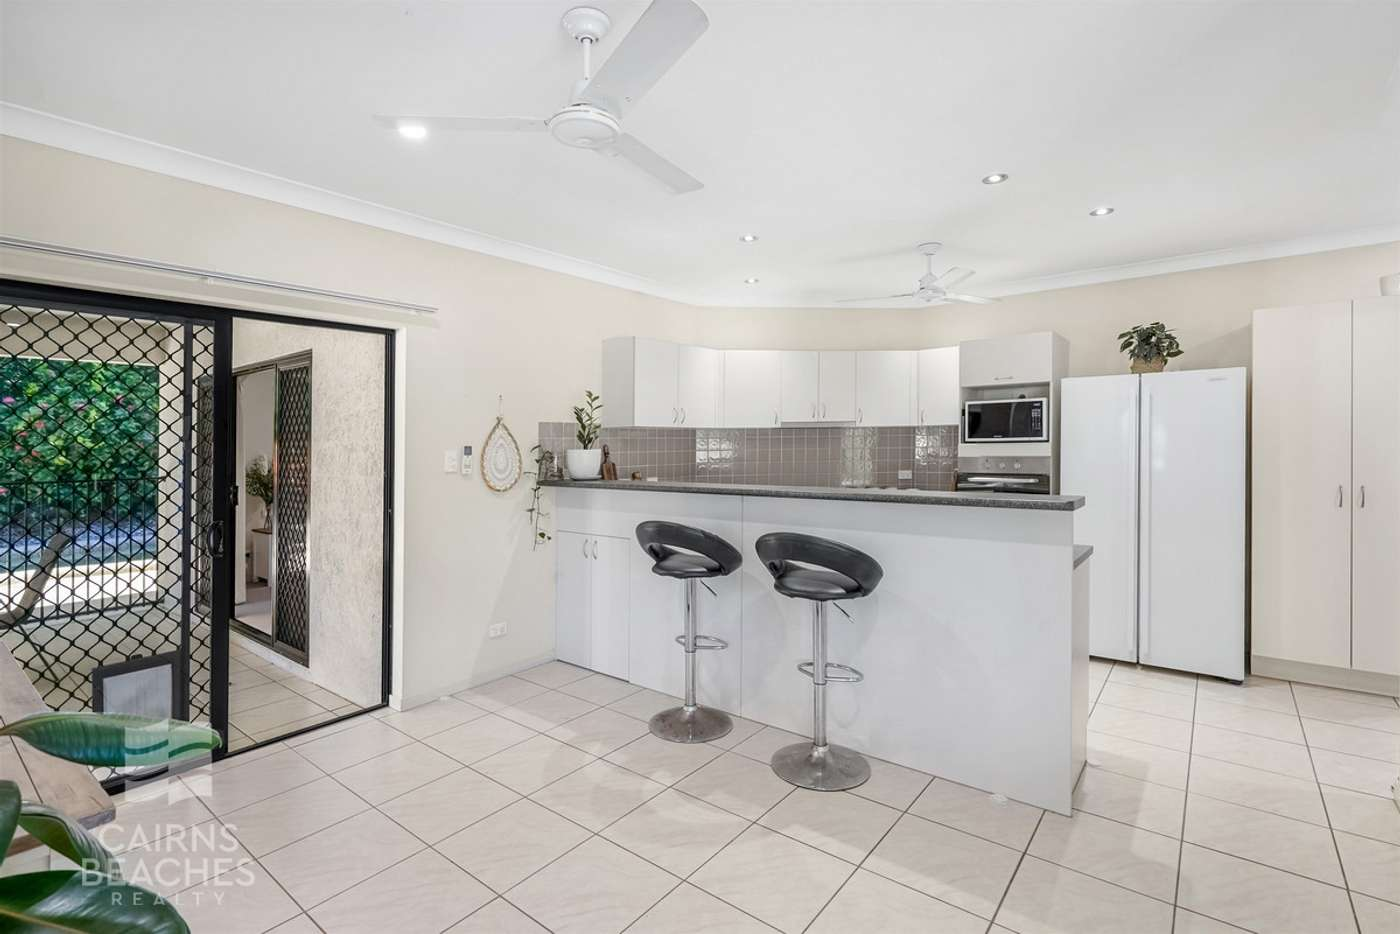 Fifth view of Homely house listing, 29 Castor Street, Clifton Beach QLD 4879